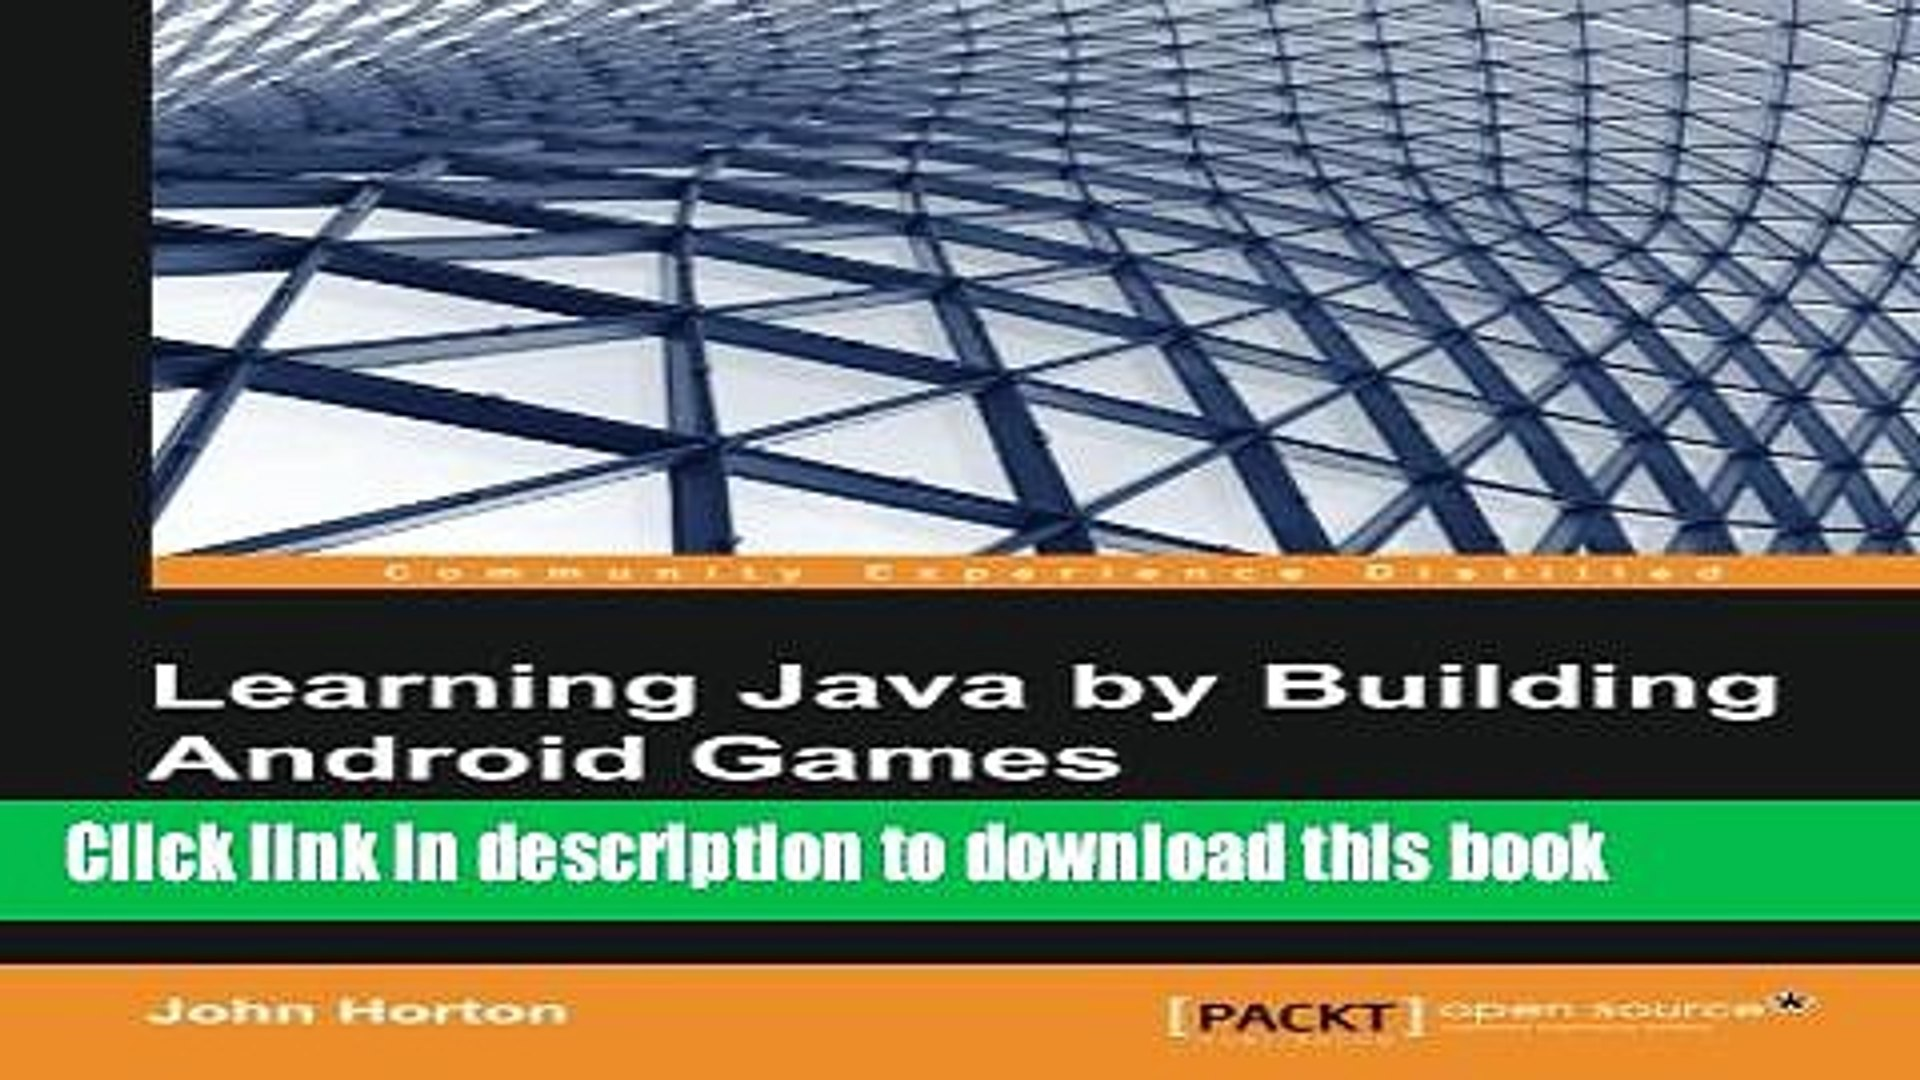 Read Book Learning Java by Building Android Games - Explore Java Through Mobile Game Development